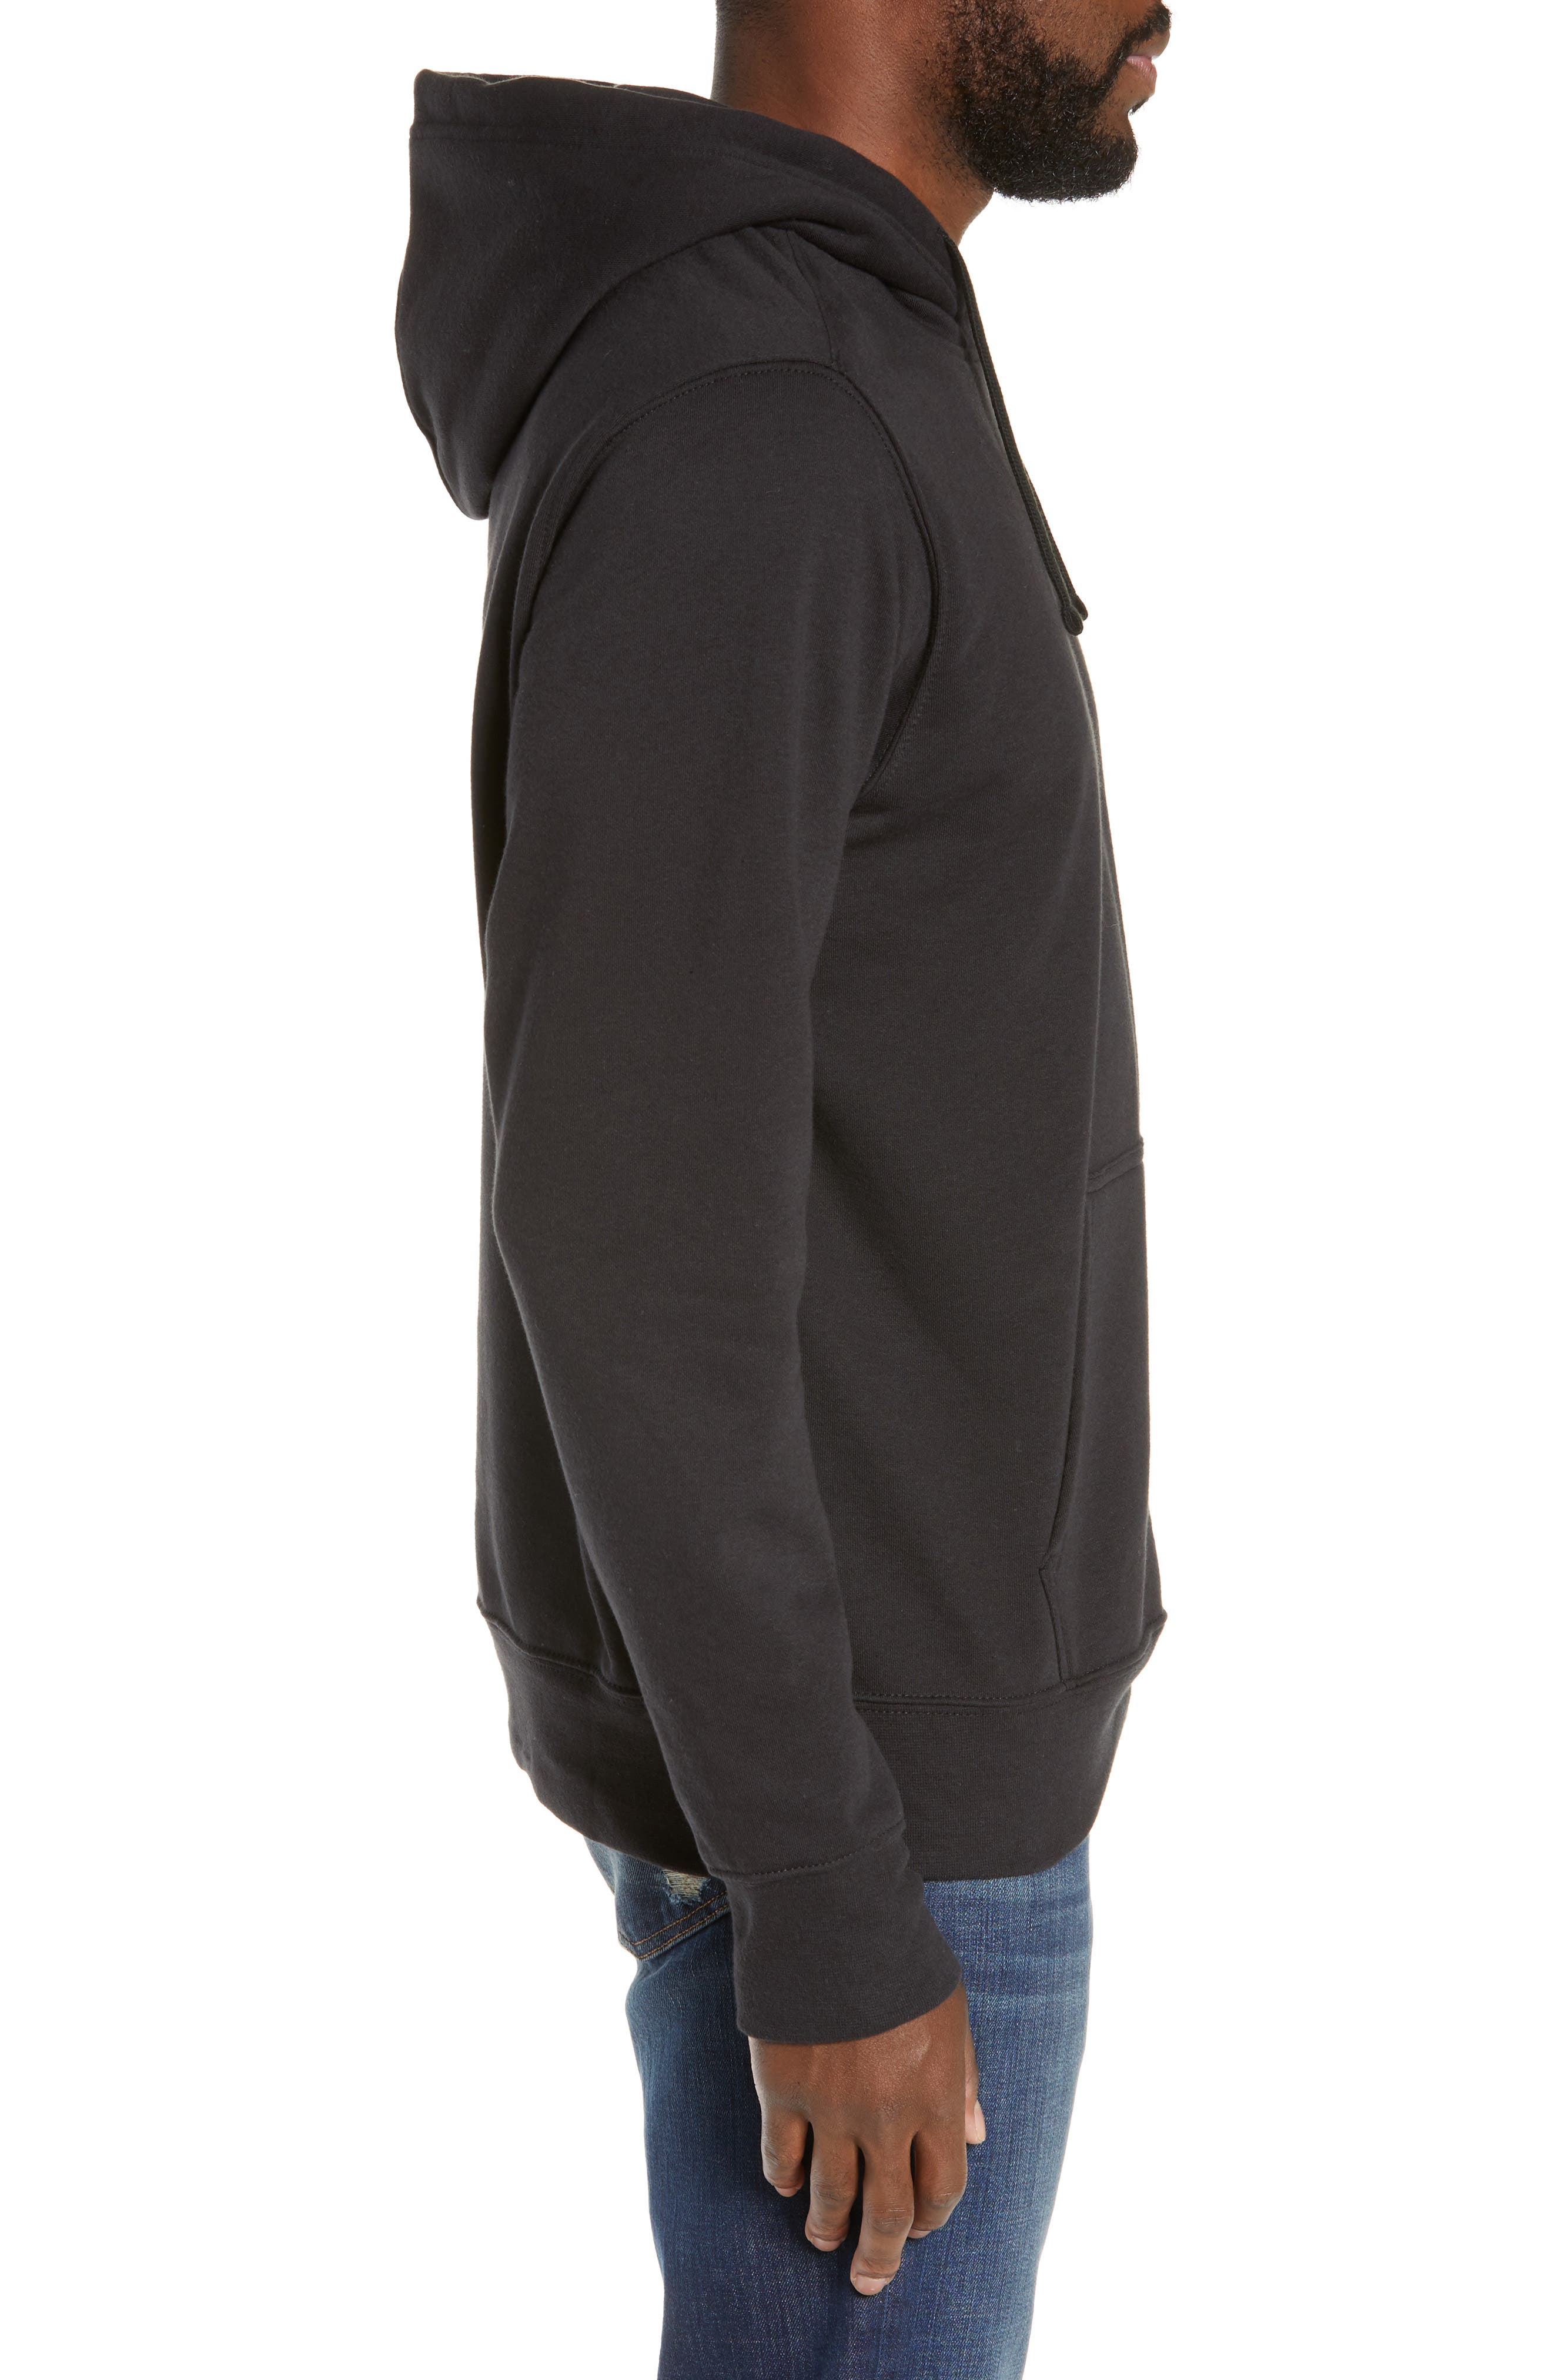 Urban Patches Hoodie,                             Alternate thumbnail 3, color,                             001